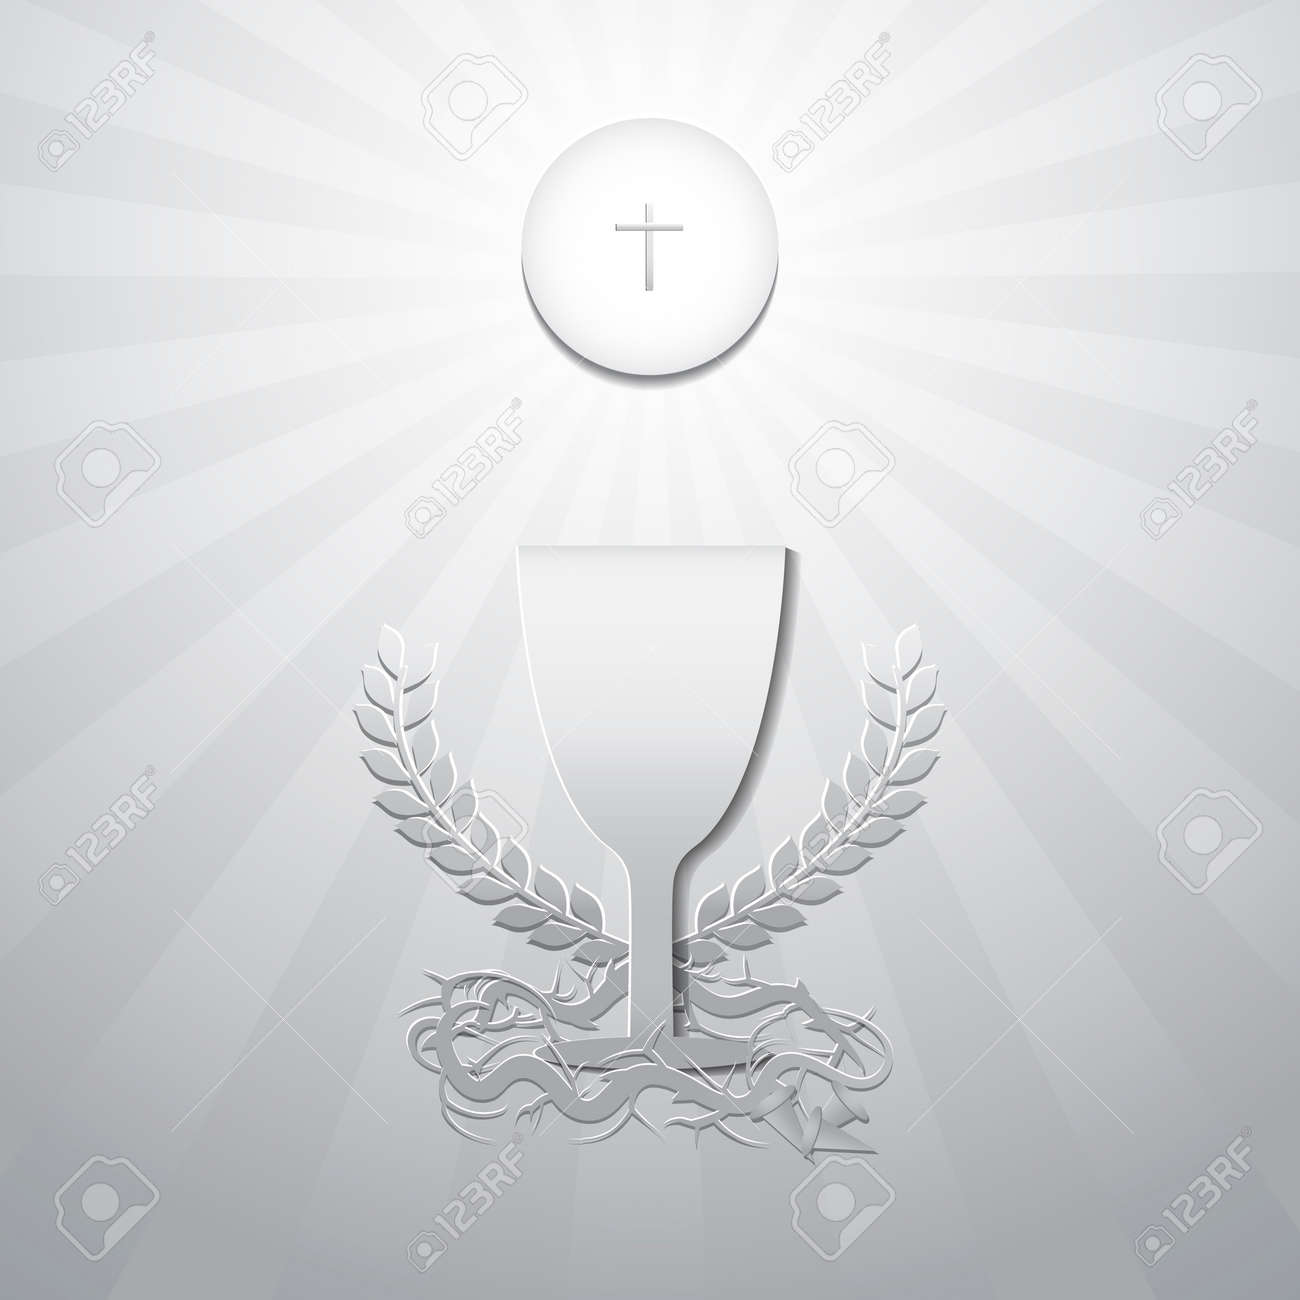 Eucharist Symbols Bread Chalice With Crown Of Thorns And 3 Nails